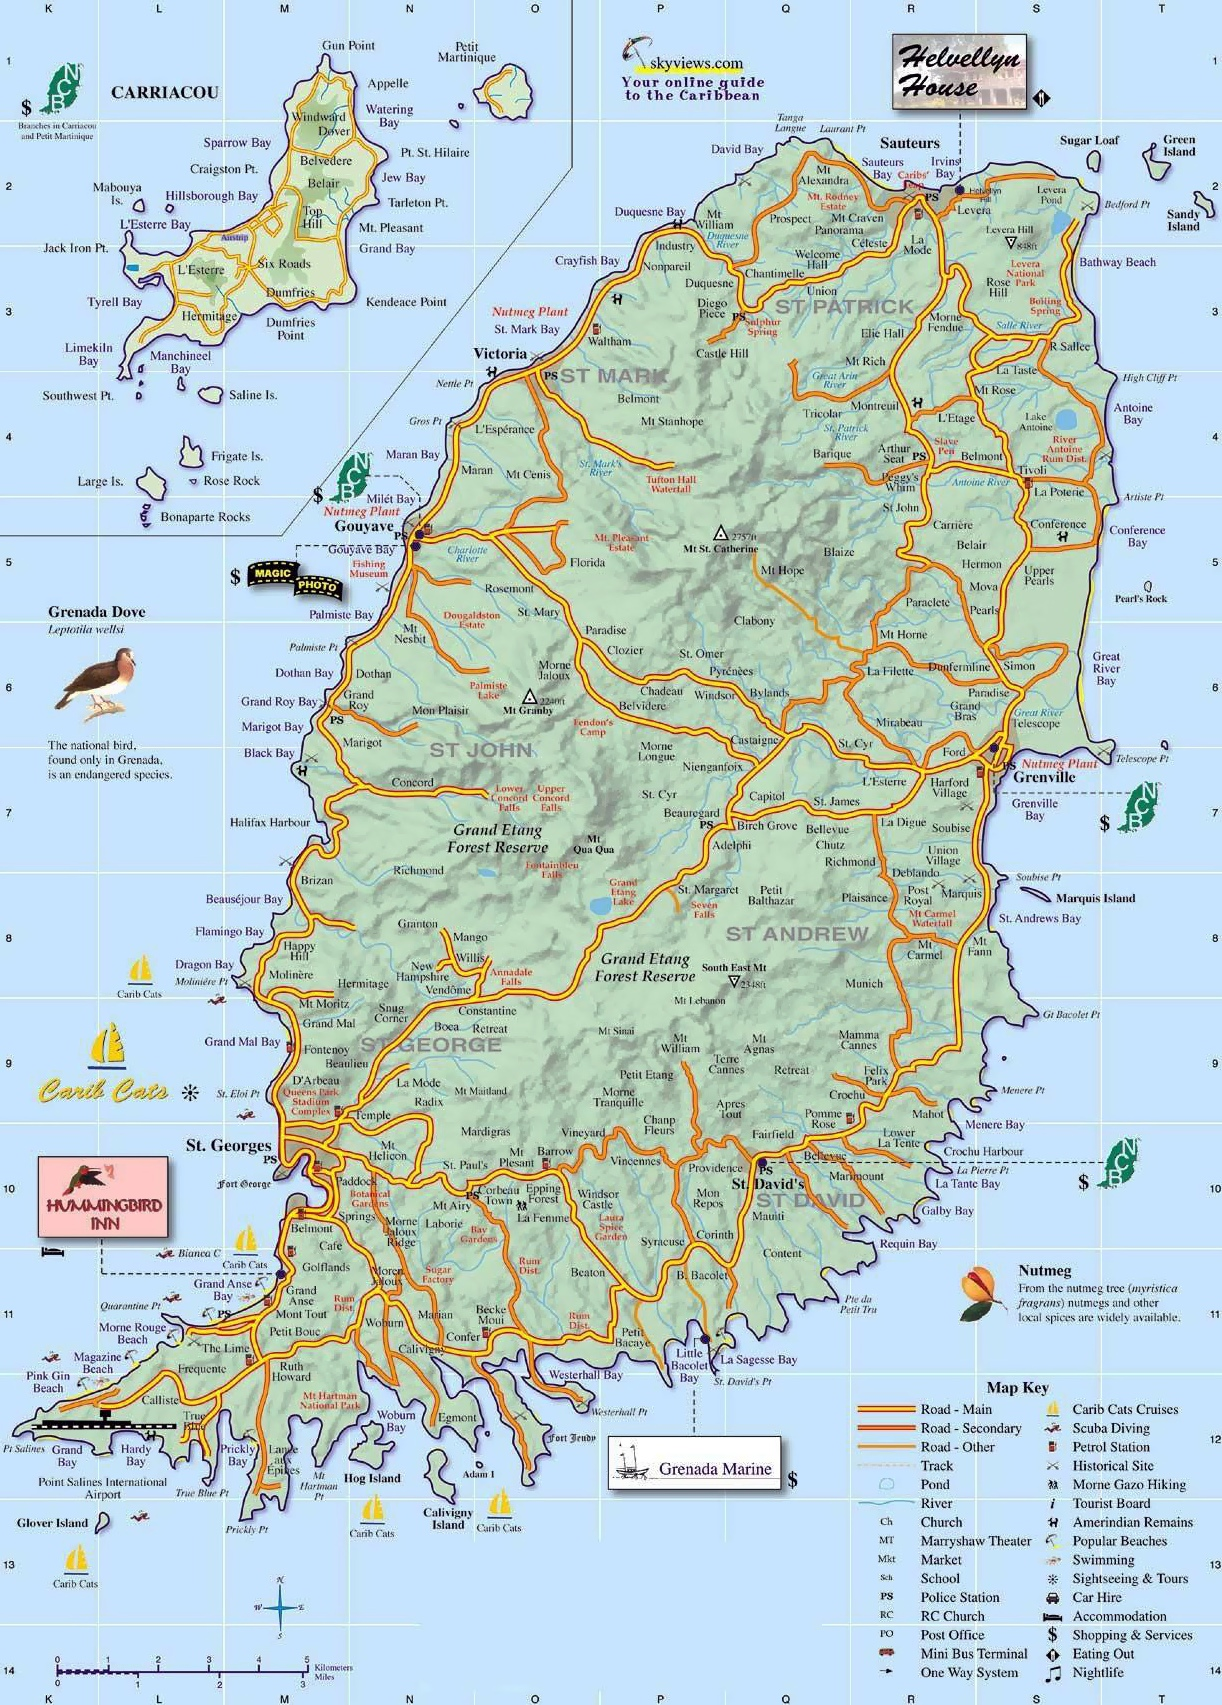 Grenada Maps Maps Of Grenada - Map of grenada world